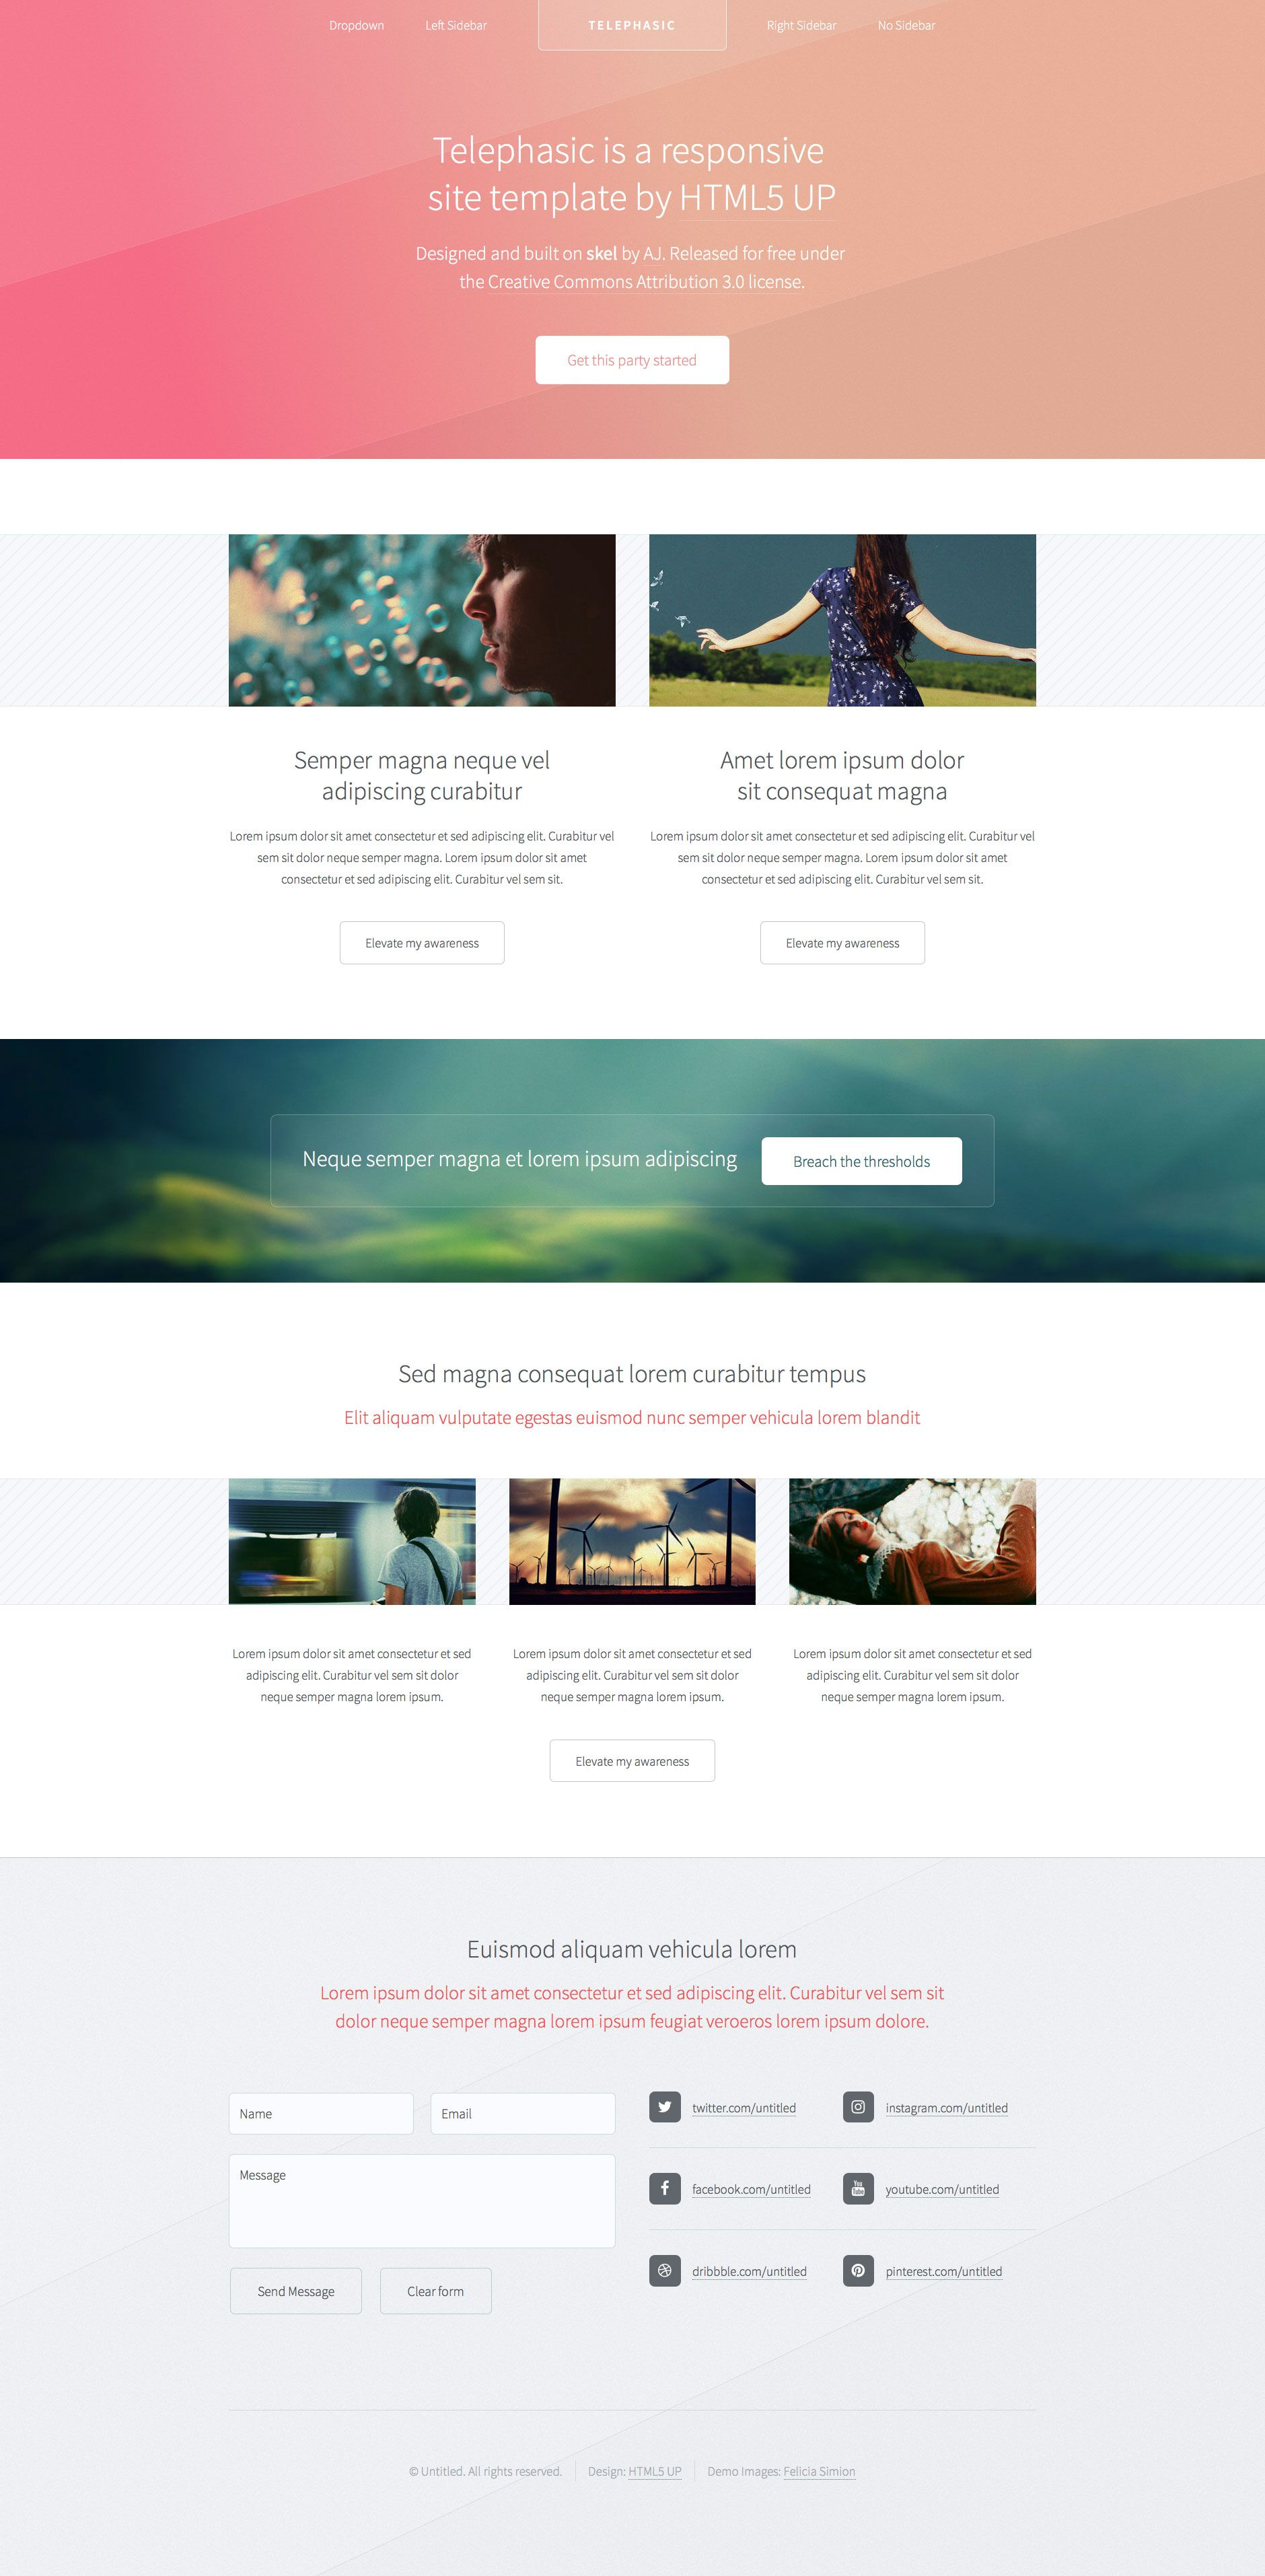 Telephasic is retina ready free responsive HTML5 website template ...